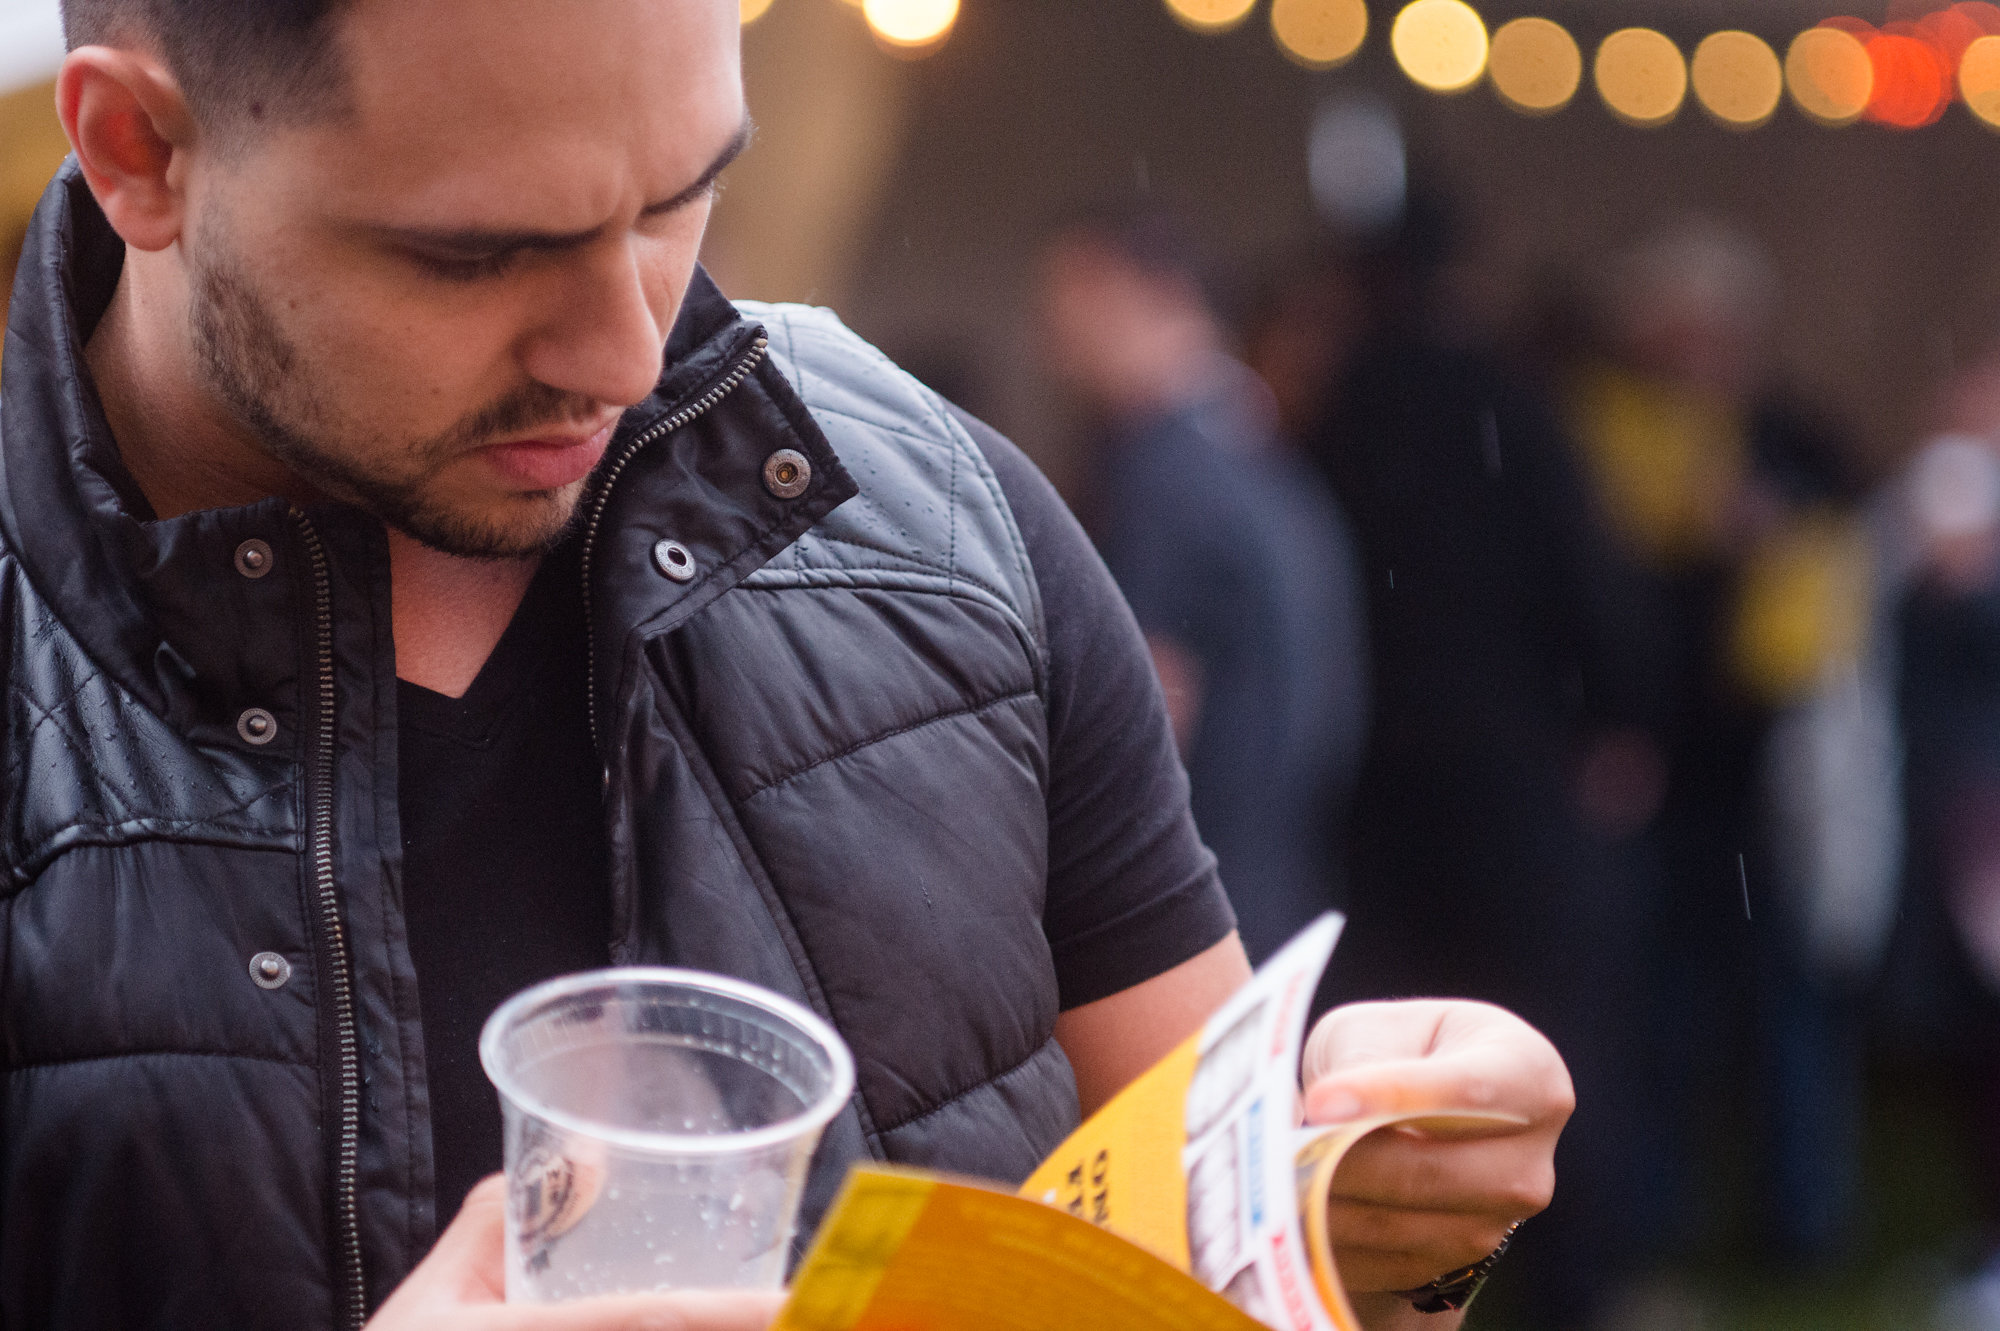 Our beer list is printed within our festival guide, handed out on site.